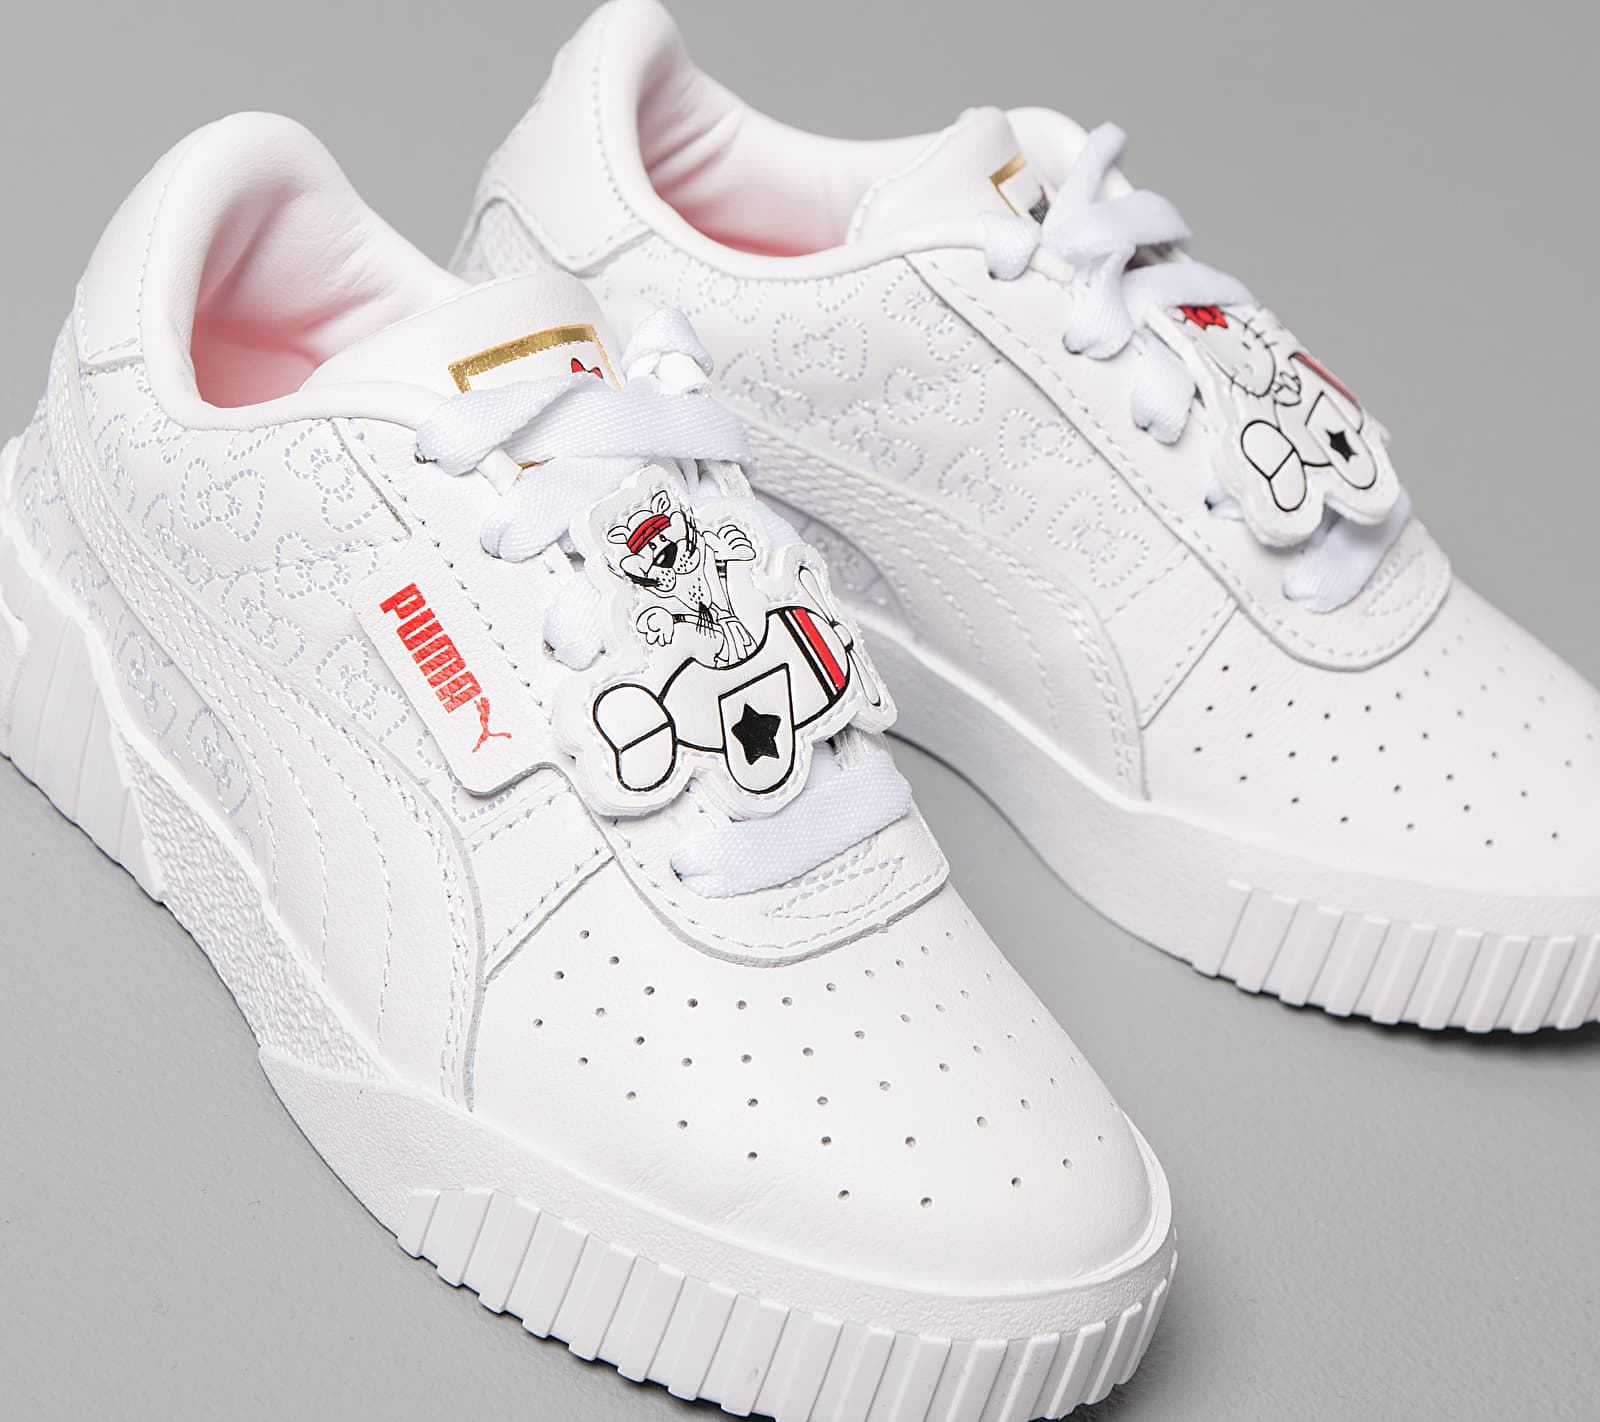 Puma x Hello Kitty PS Puma White/ Puma Black